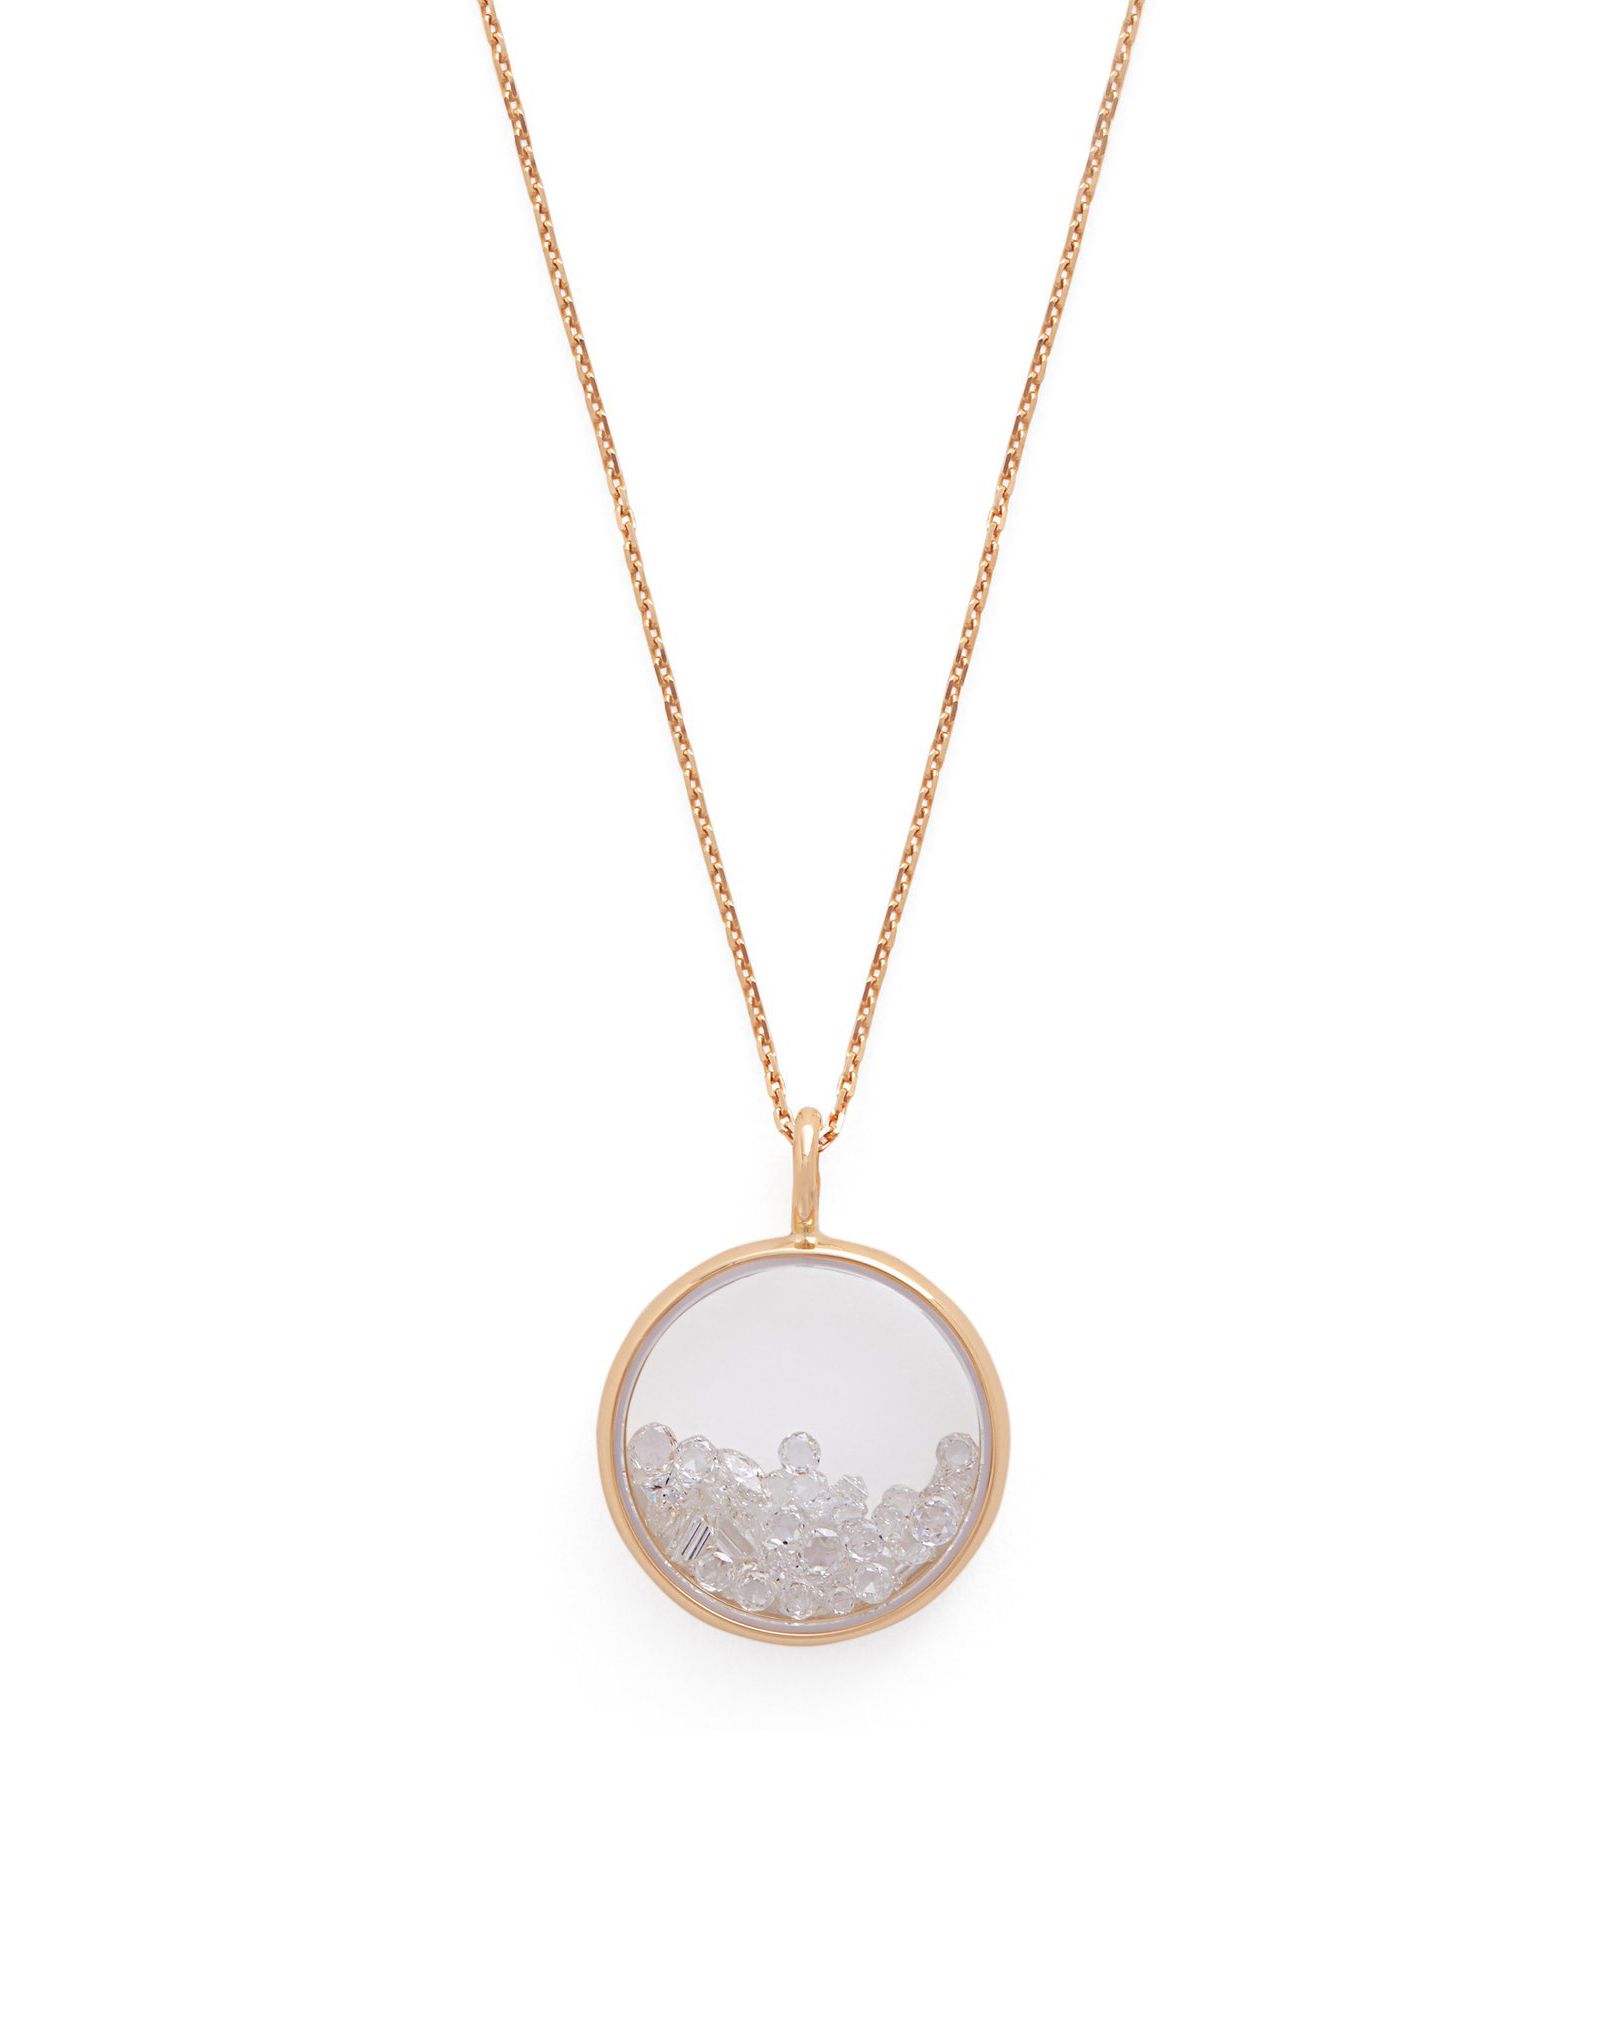 18kt yellow-gold Chivor necklace